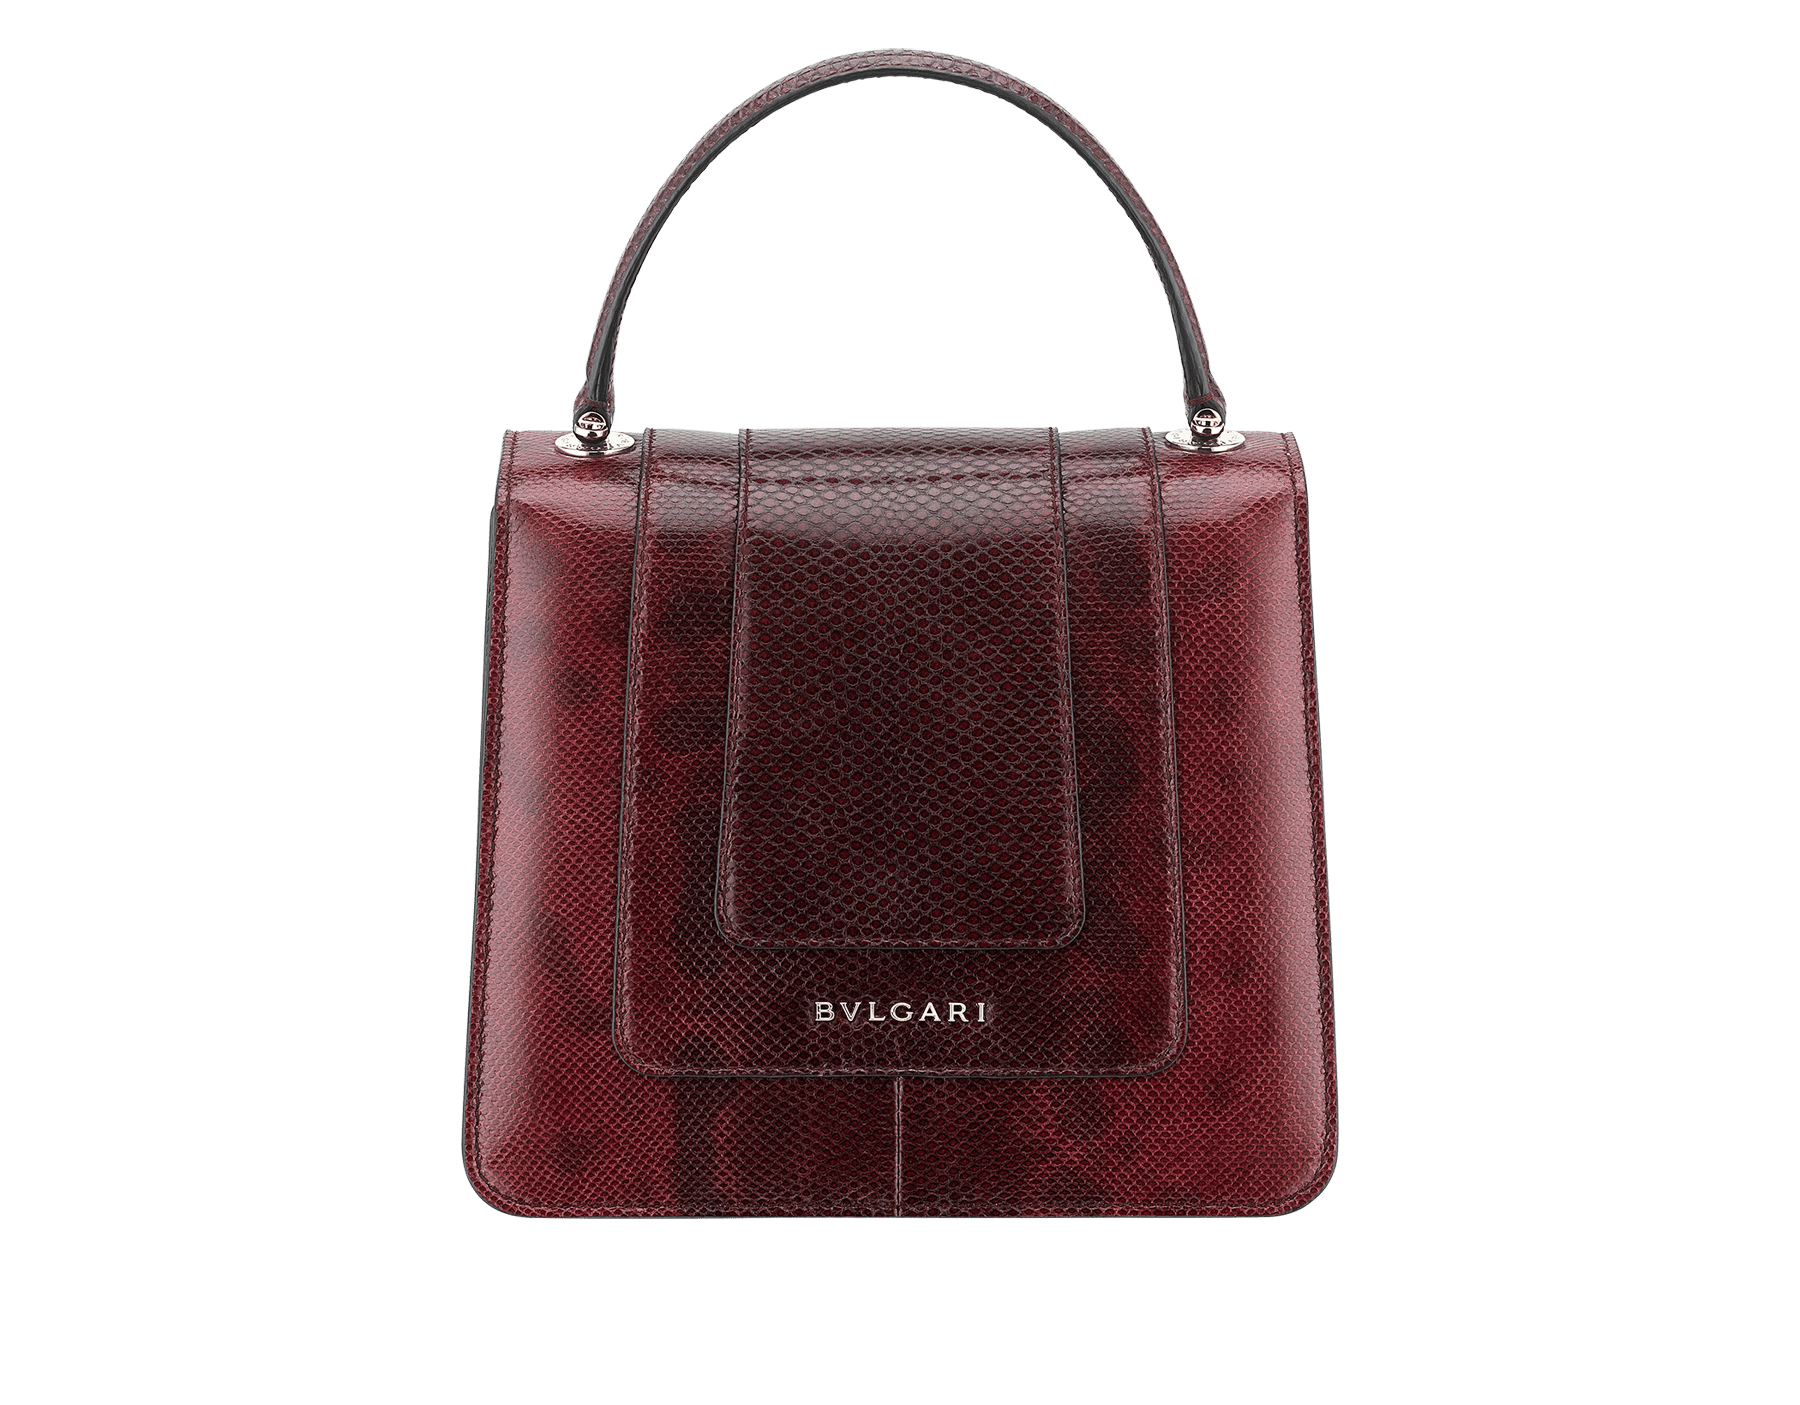 Flap cover bag Serpenti Forever in roman garnet shiny karung skin. Brass light gold plated hardware and tempting snake head closure in shiny black and white enamel, with eyes in green malachite. 286198 image 3